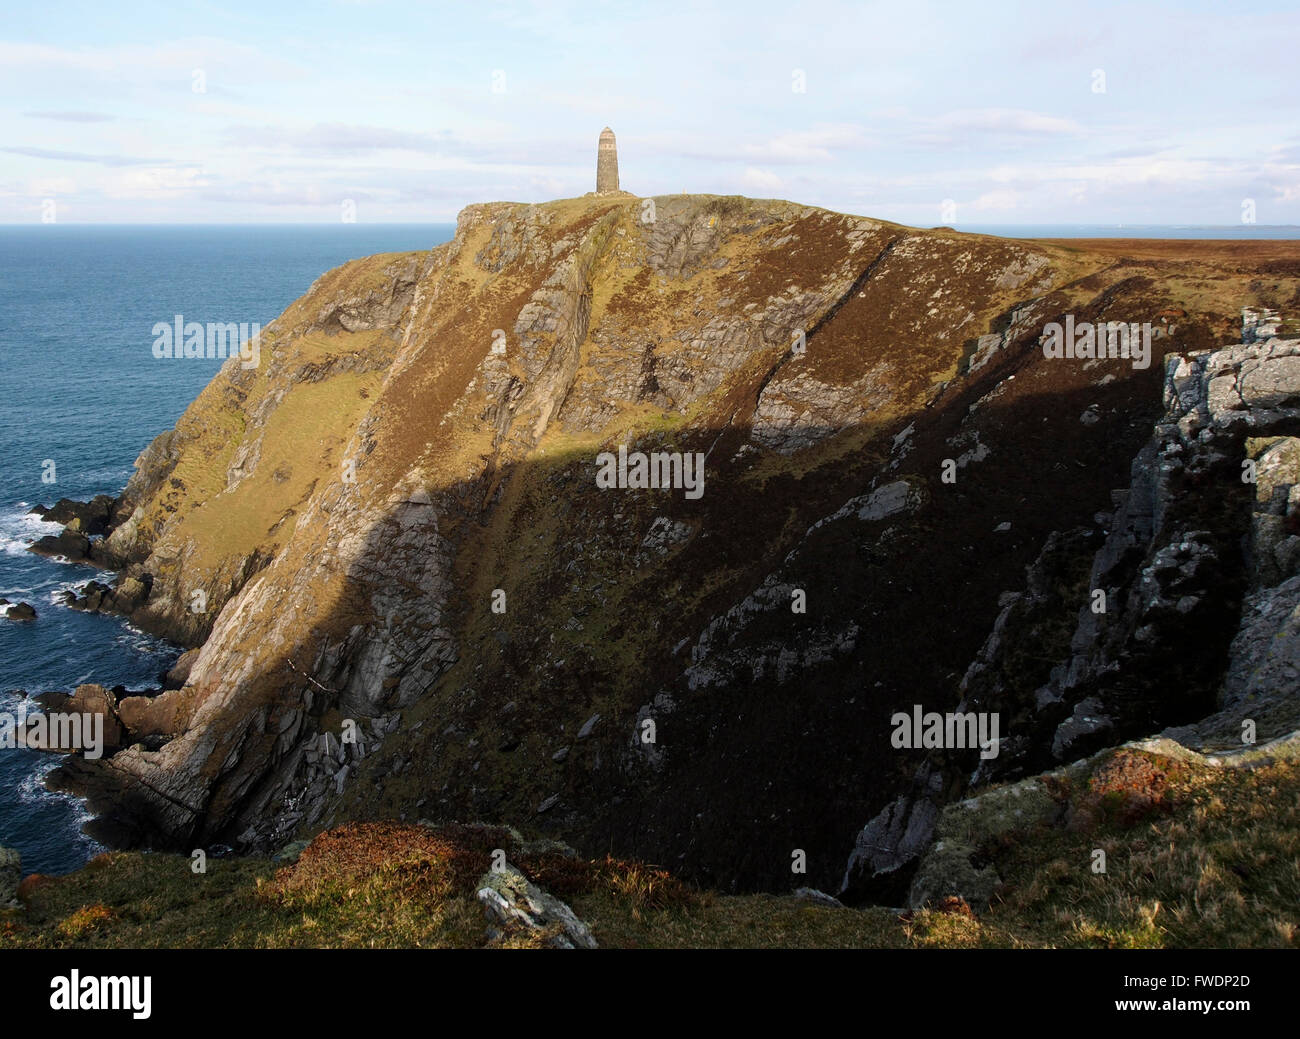 American monument, Mull of Oa, Islay, Scotland Stock Photo